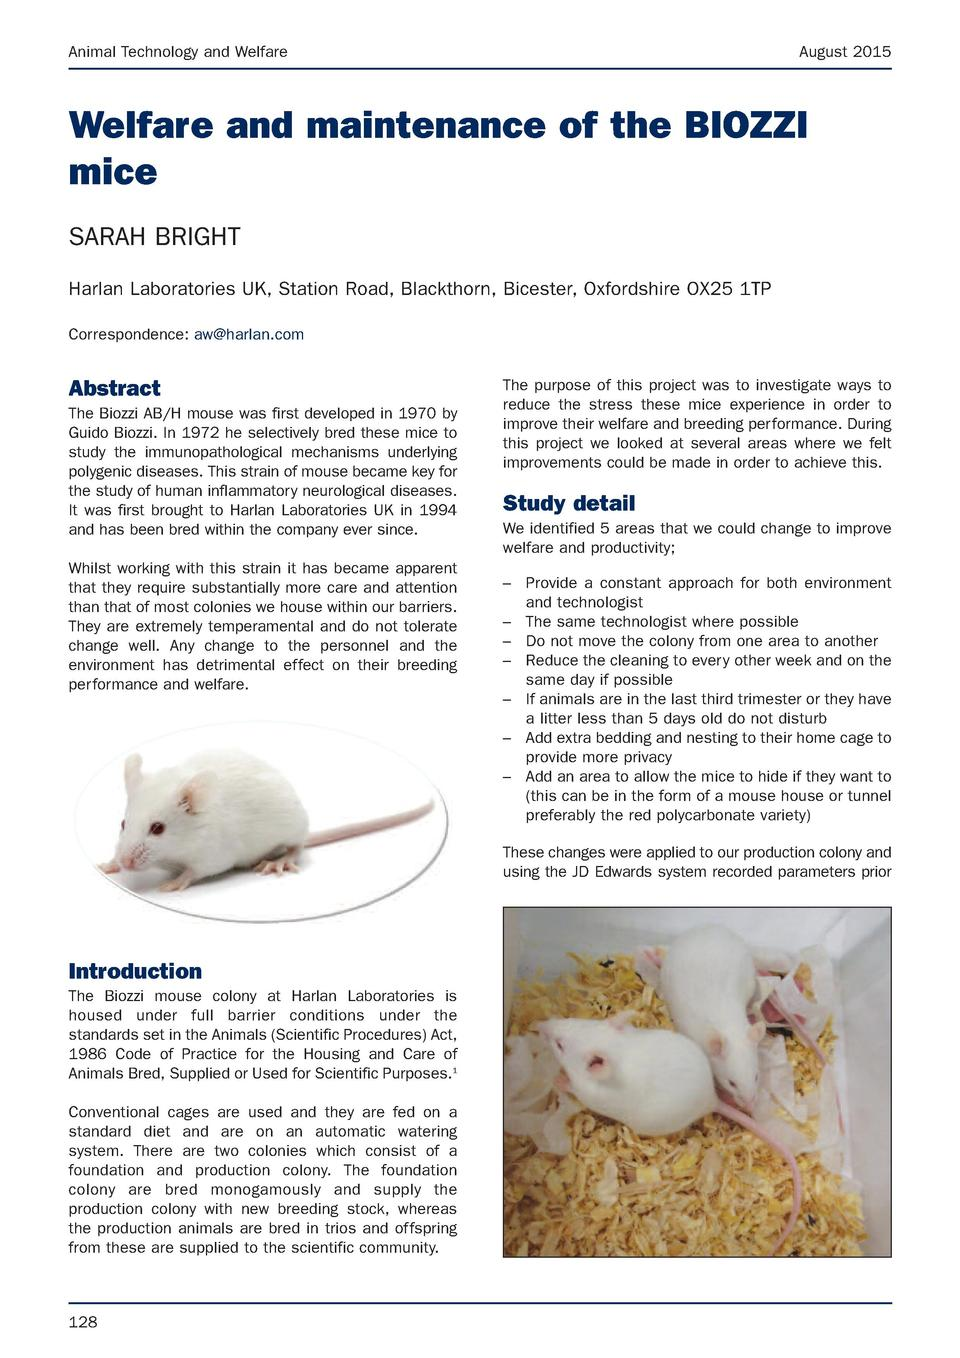 Animal Technology and Welfare  August 2015  Welfare and maintenance of the BIOZZI mice SARAH BRIGHT Harlan Laboratories UK...